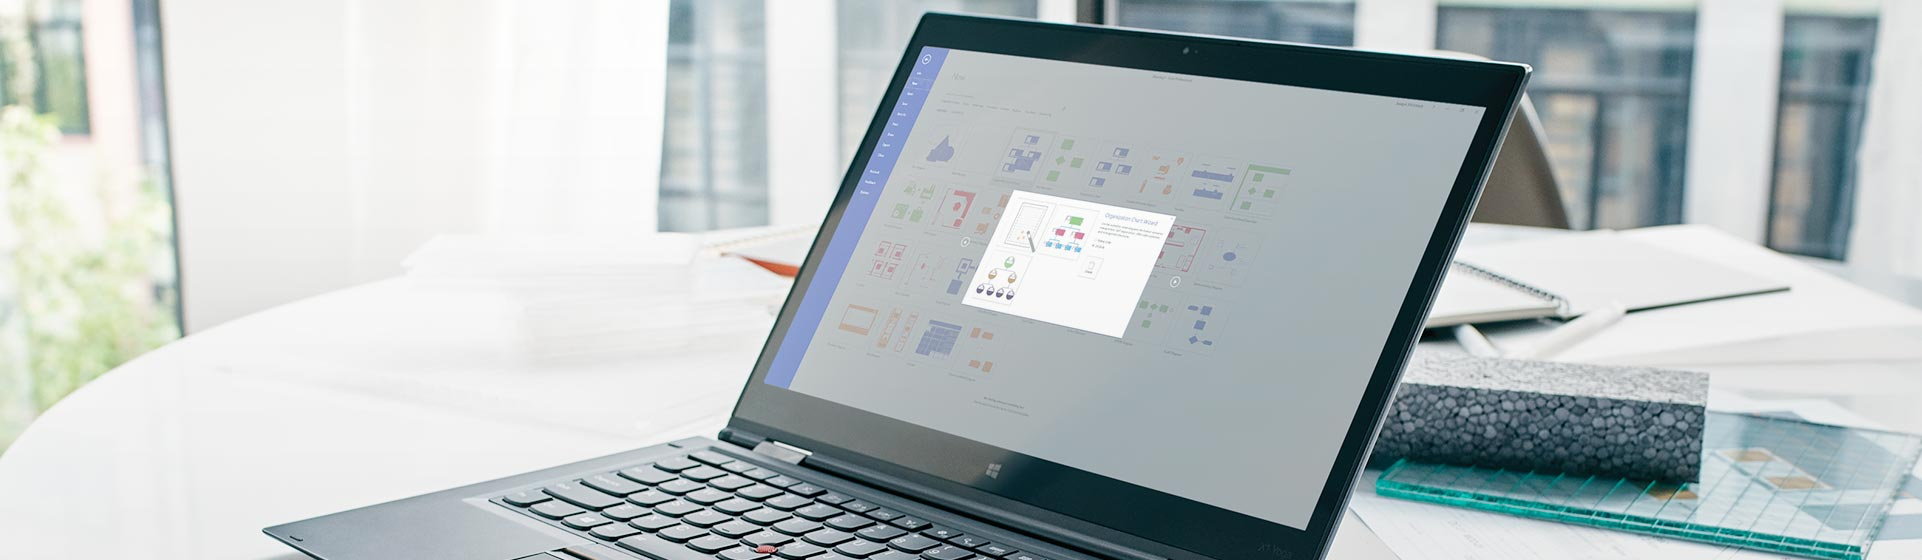 A tablet screen displaying an animation of how to create an organizational chart using a wizard in Visio